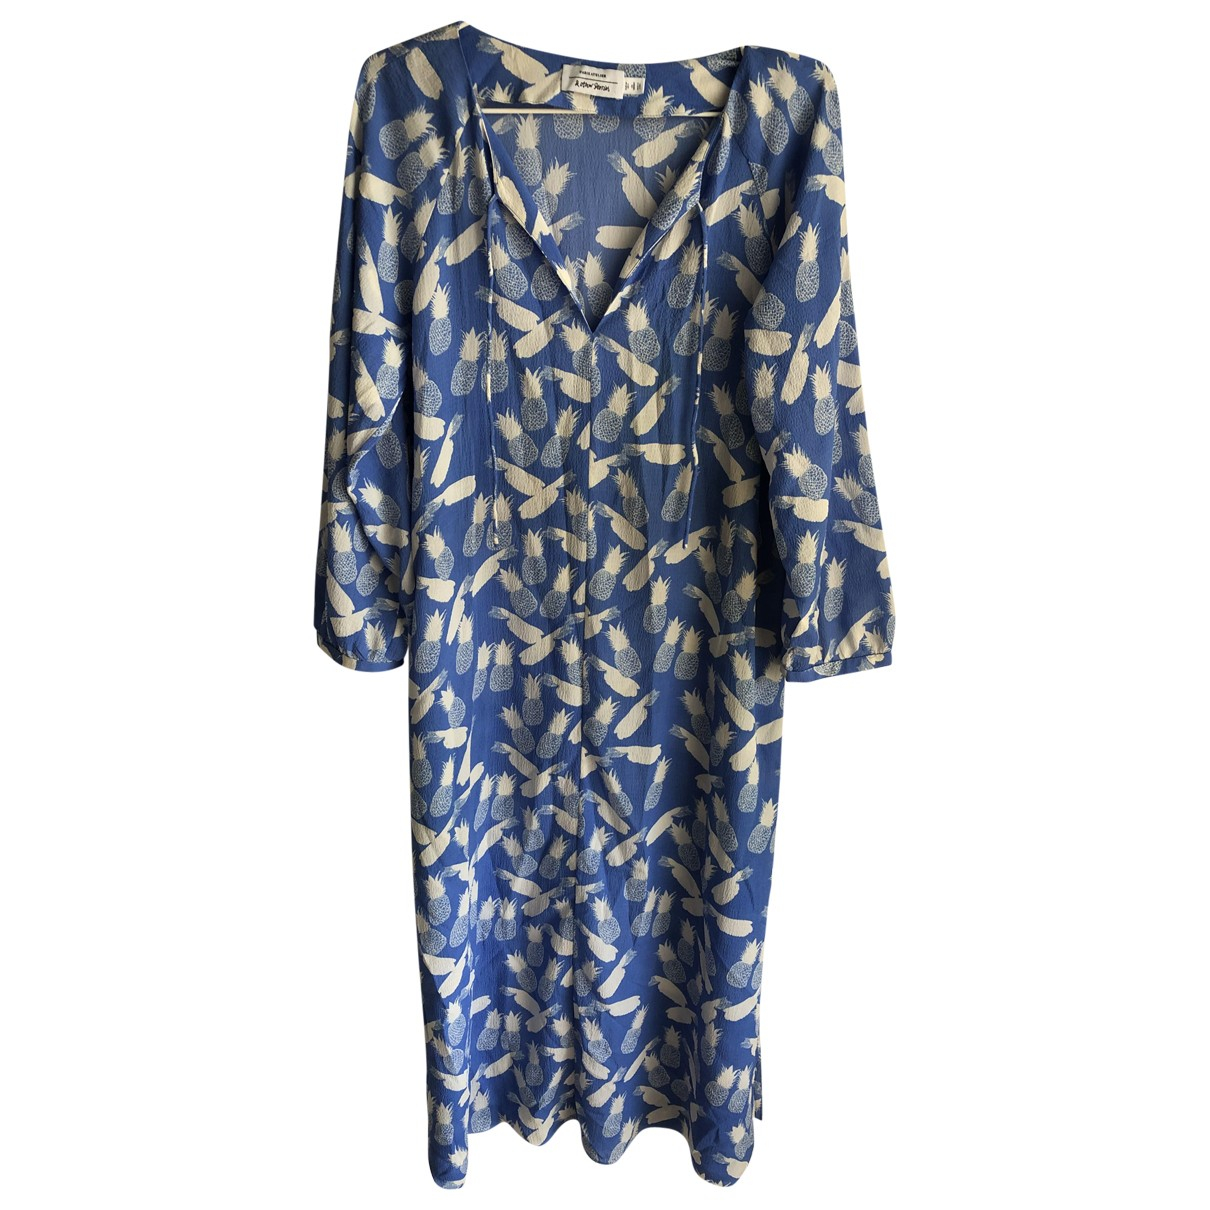 & Stories \N Blue dress for Women 34 FR